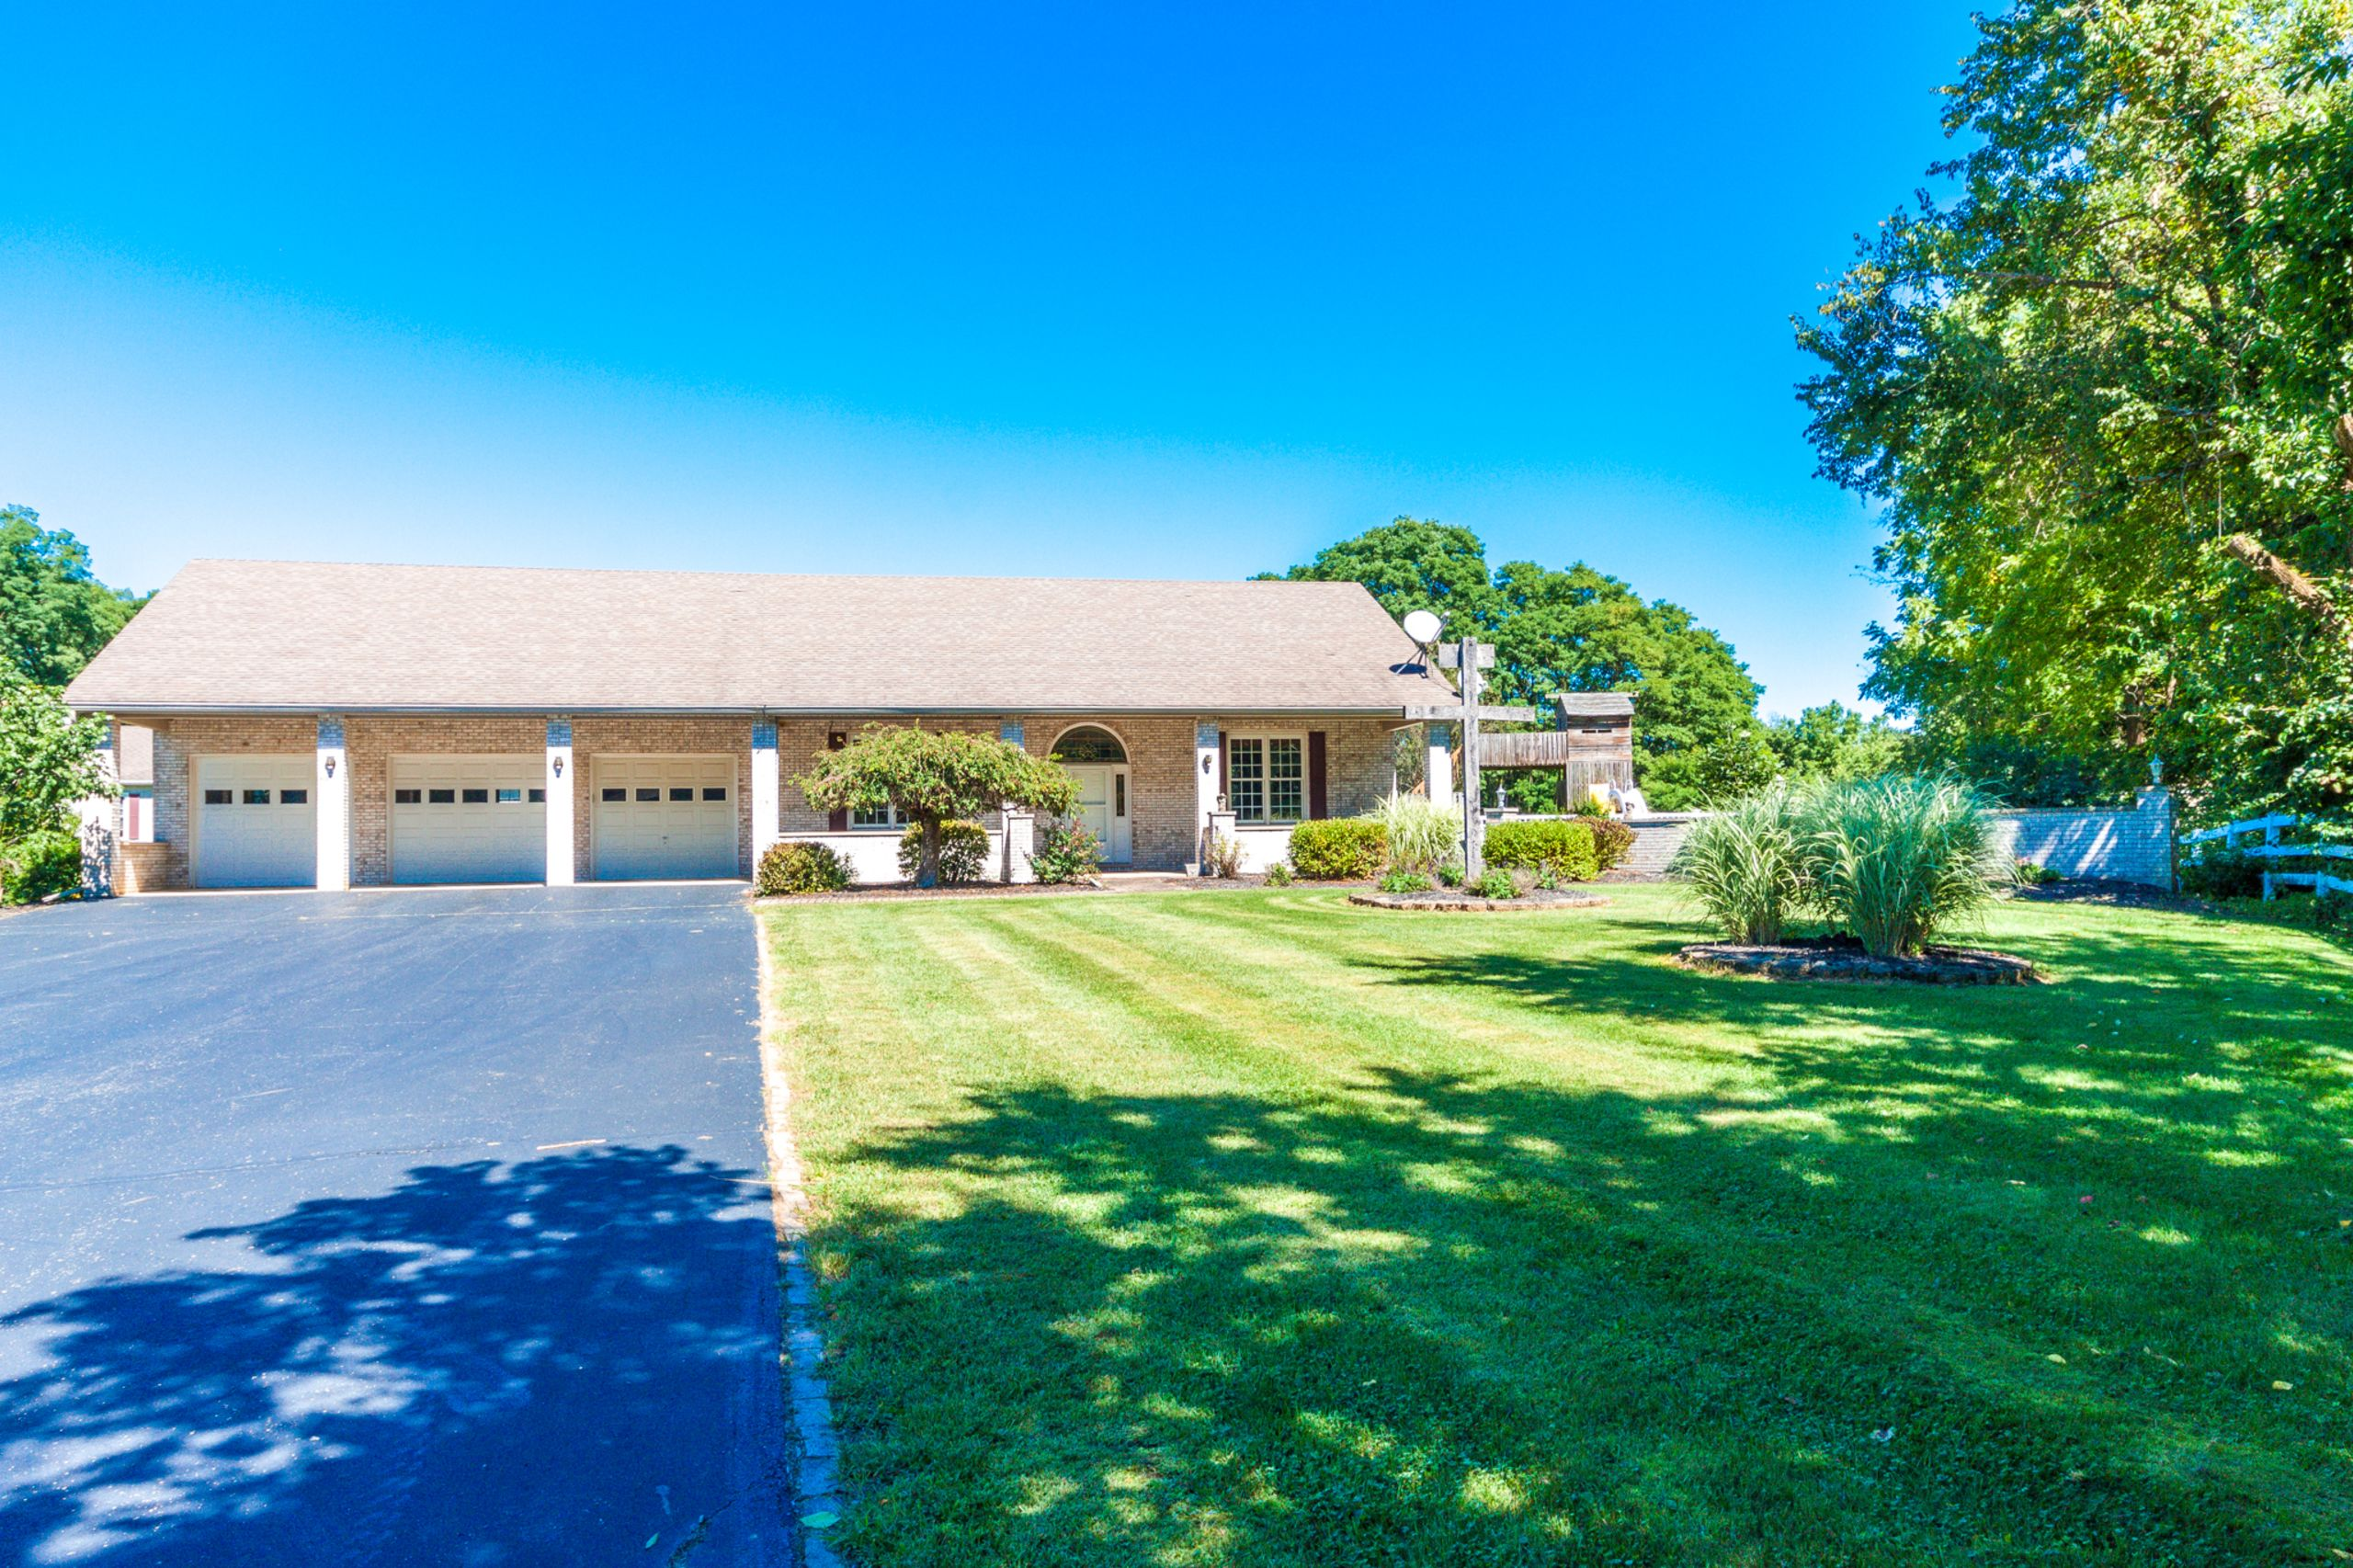 Stunning full brick ranch style home situated in an excellent area on just over 2 scenic acres